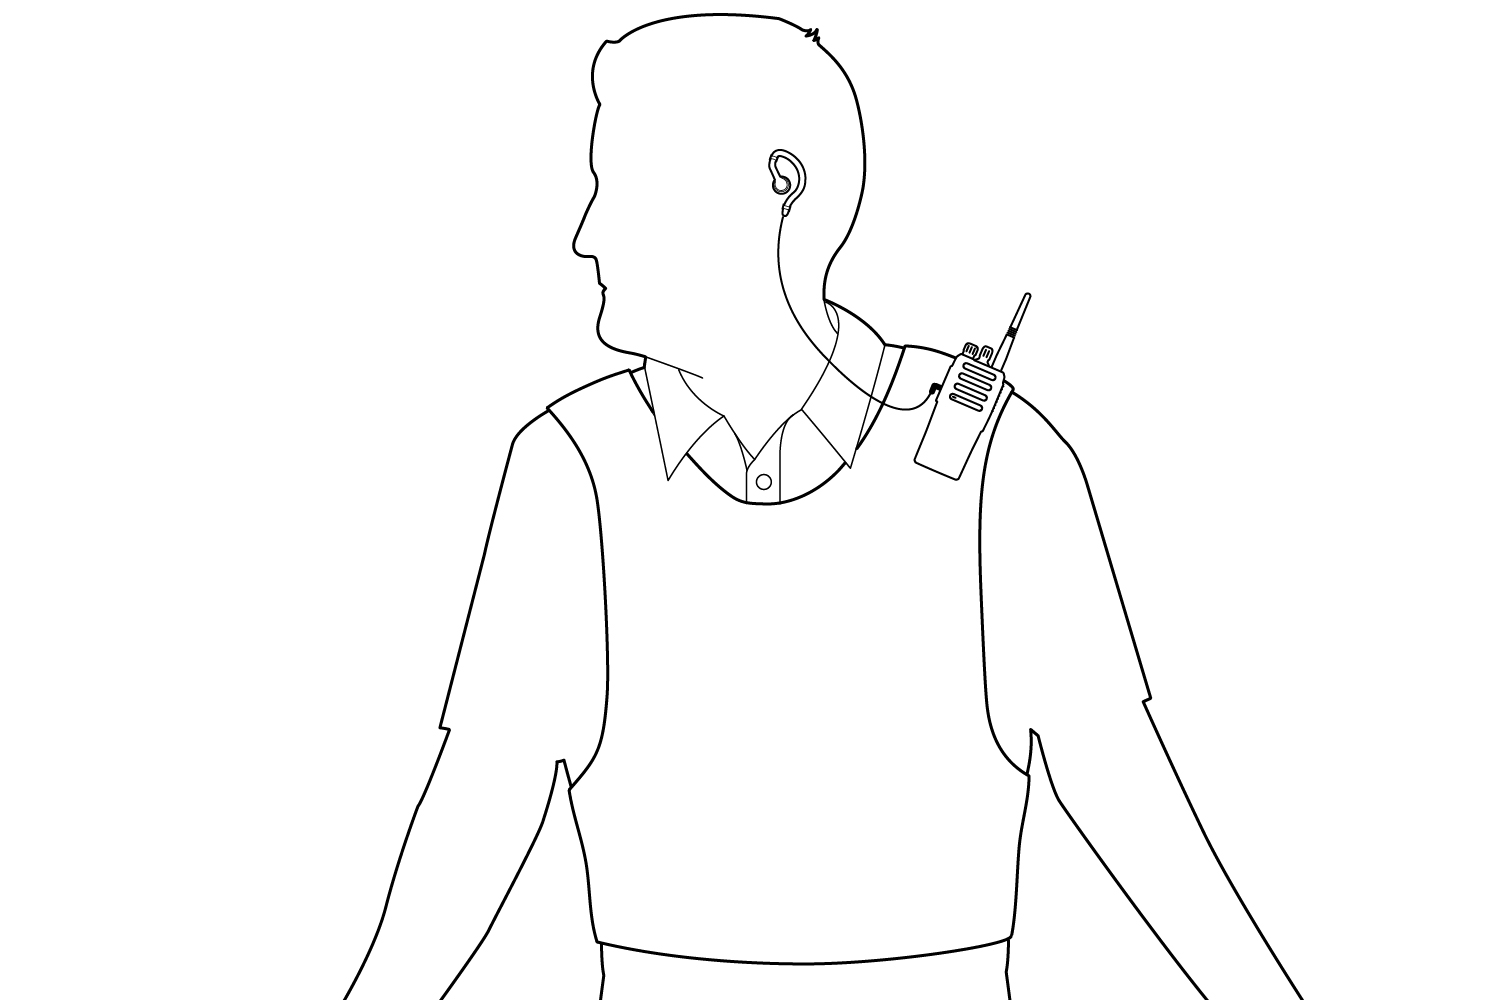 Wearing With Radio on Vest Diagram